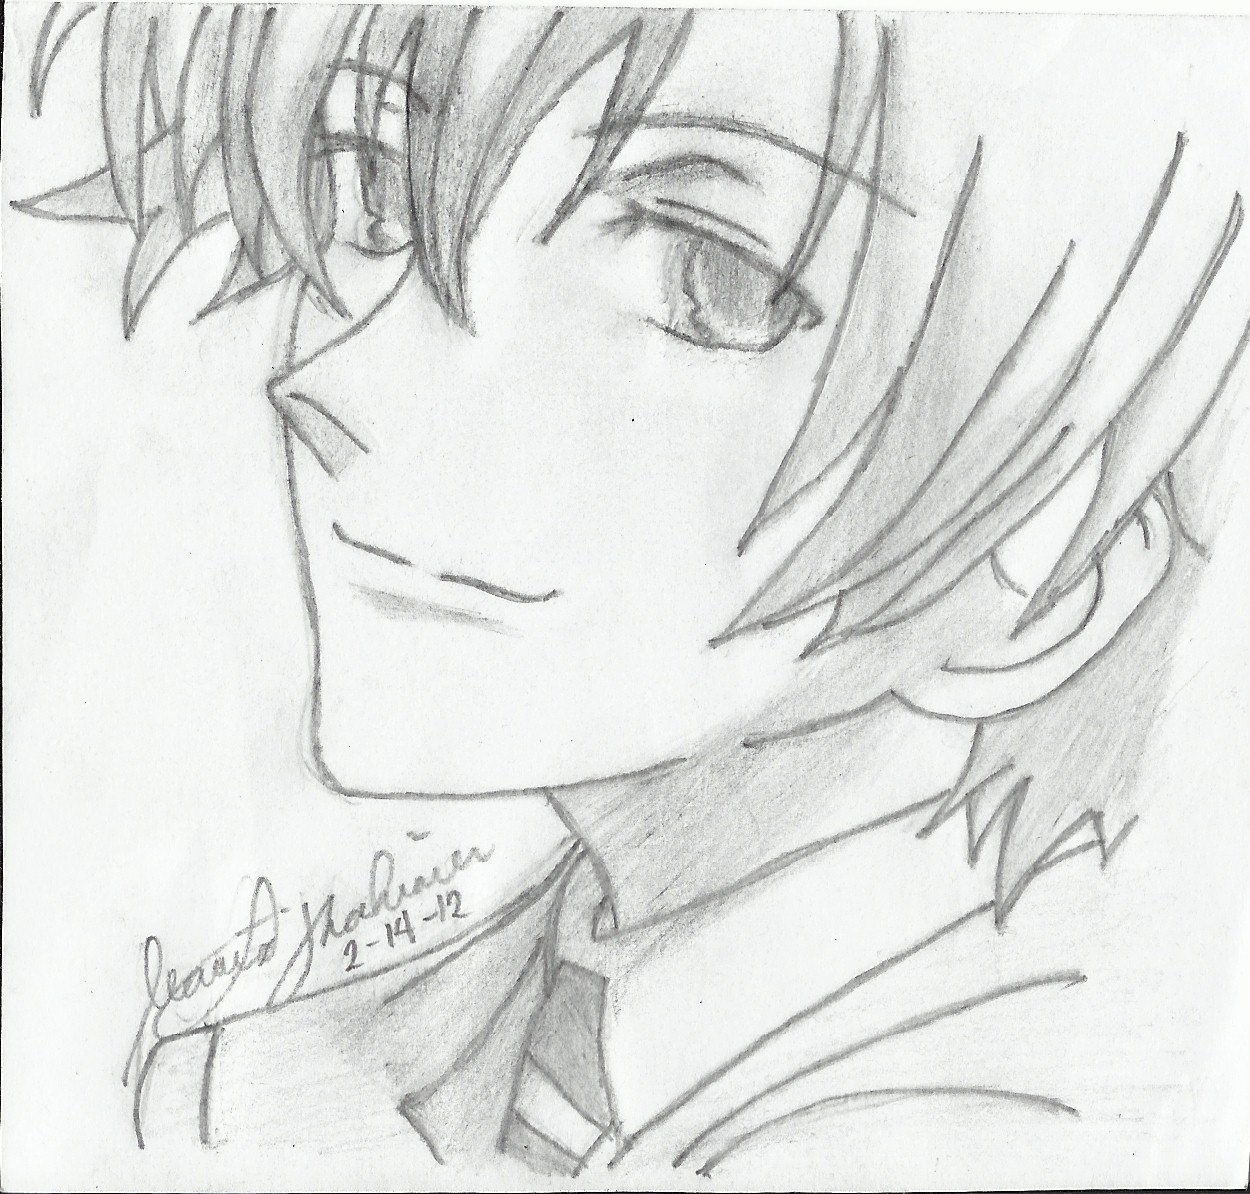 Tamaki Suoh Coloring Pages